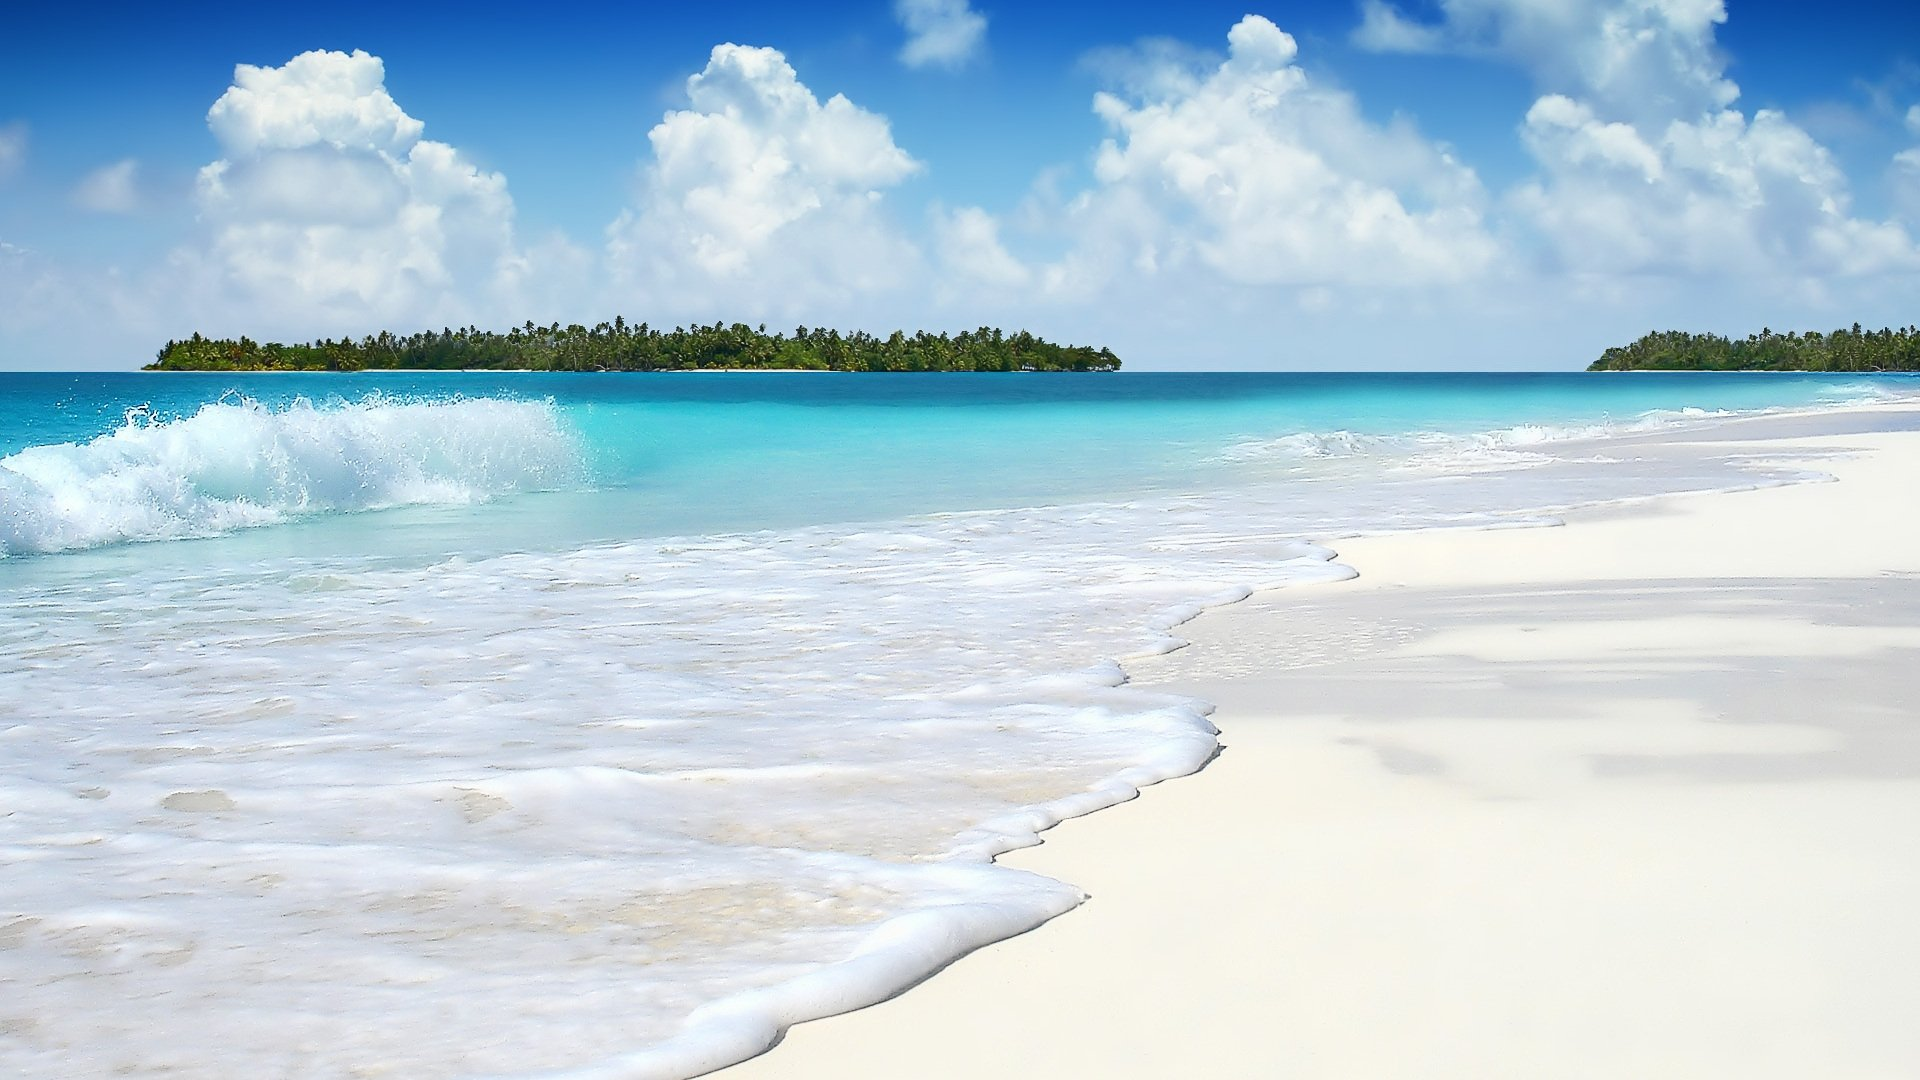 Beach Wallpaper Hd 1920x1080 - Viewing Gallery